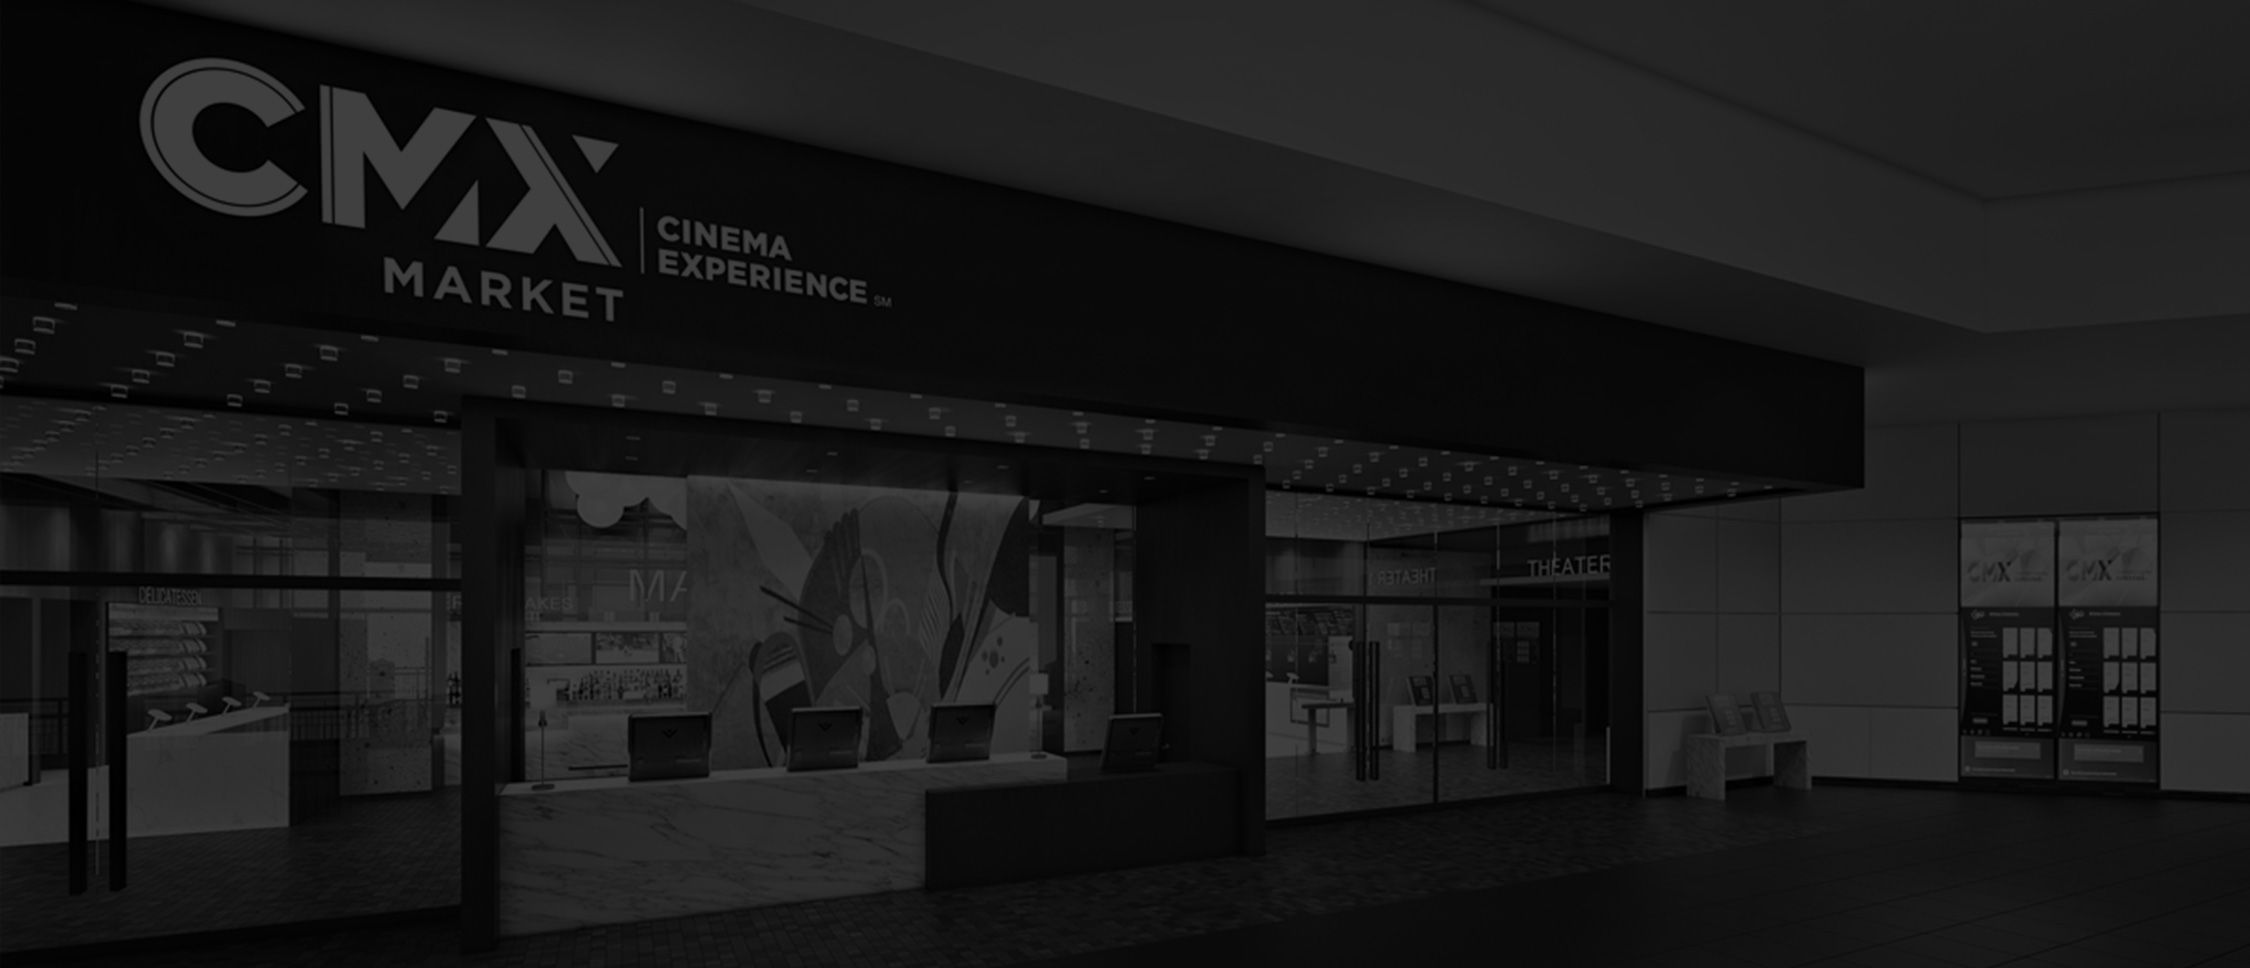 Cmx mall of america check out the new movie theater at